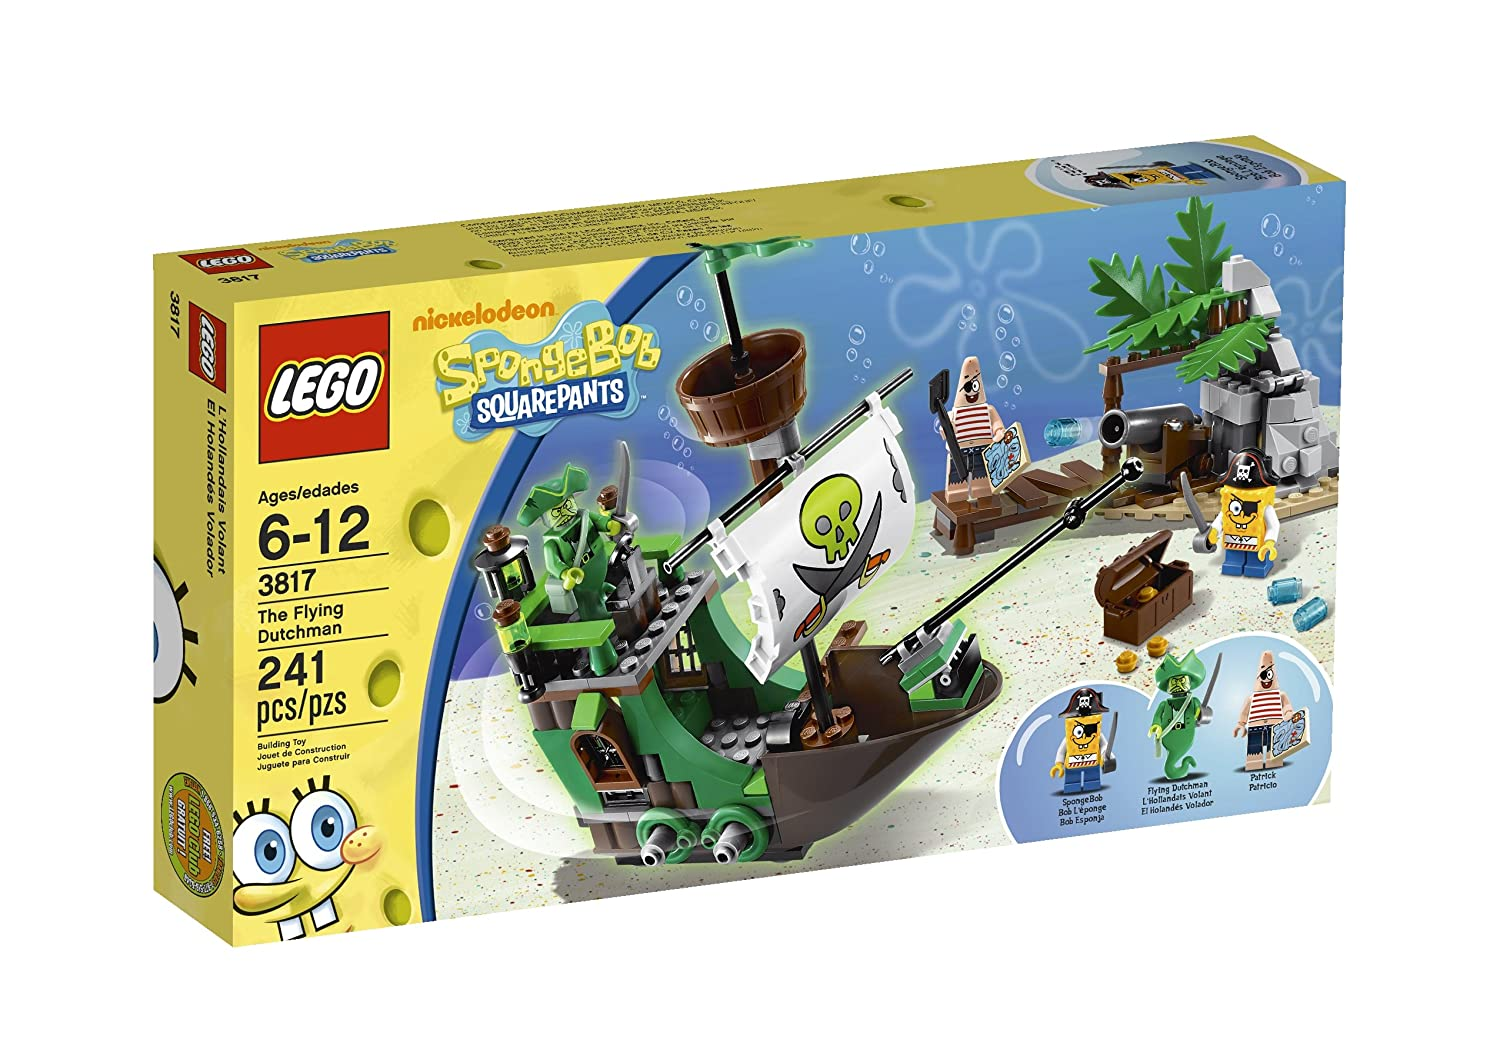 Top 9 Best LEGO Spongebob SquarePants Sets Reviews in 2019 5